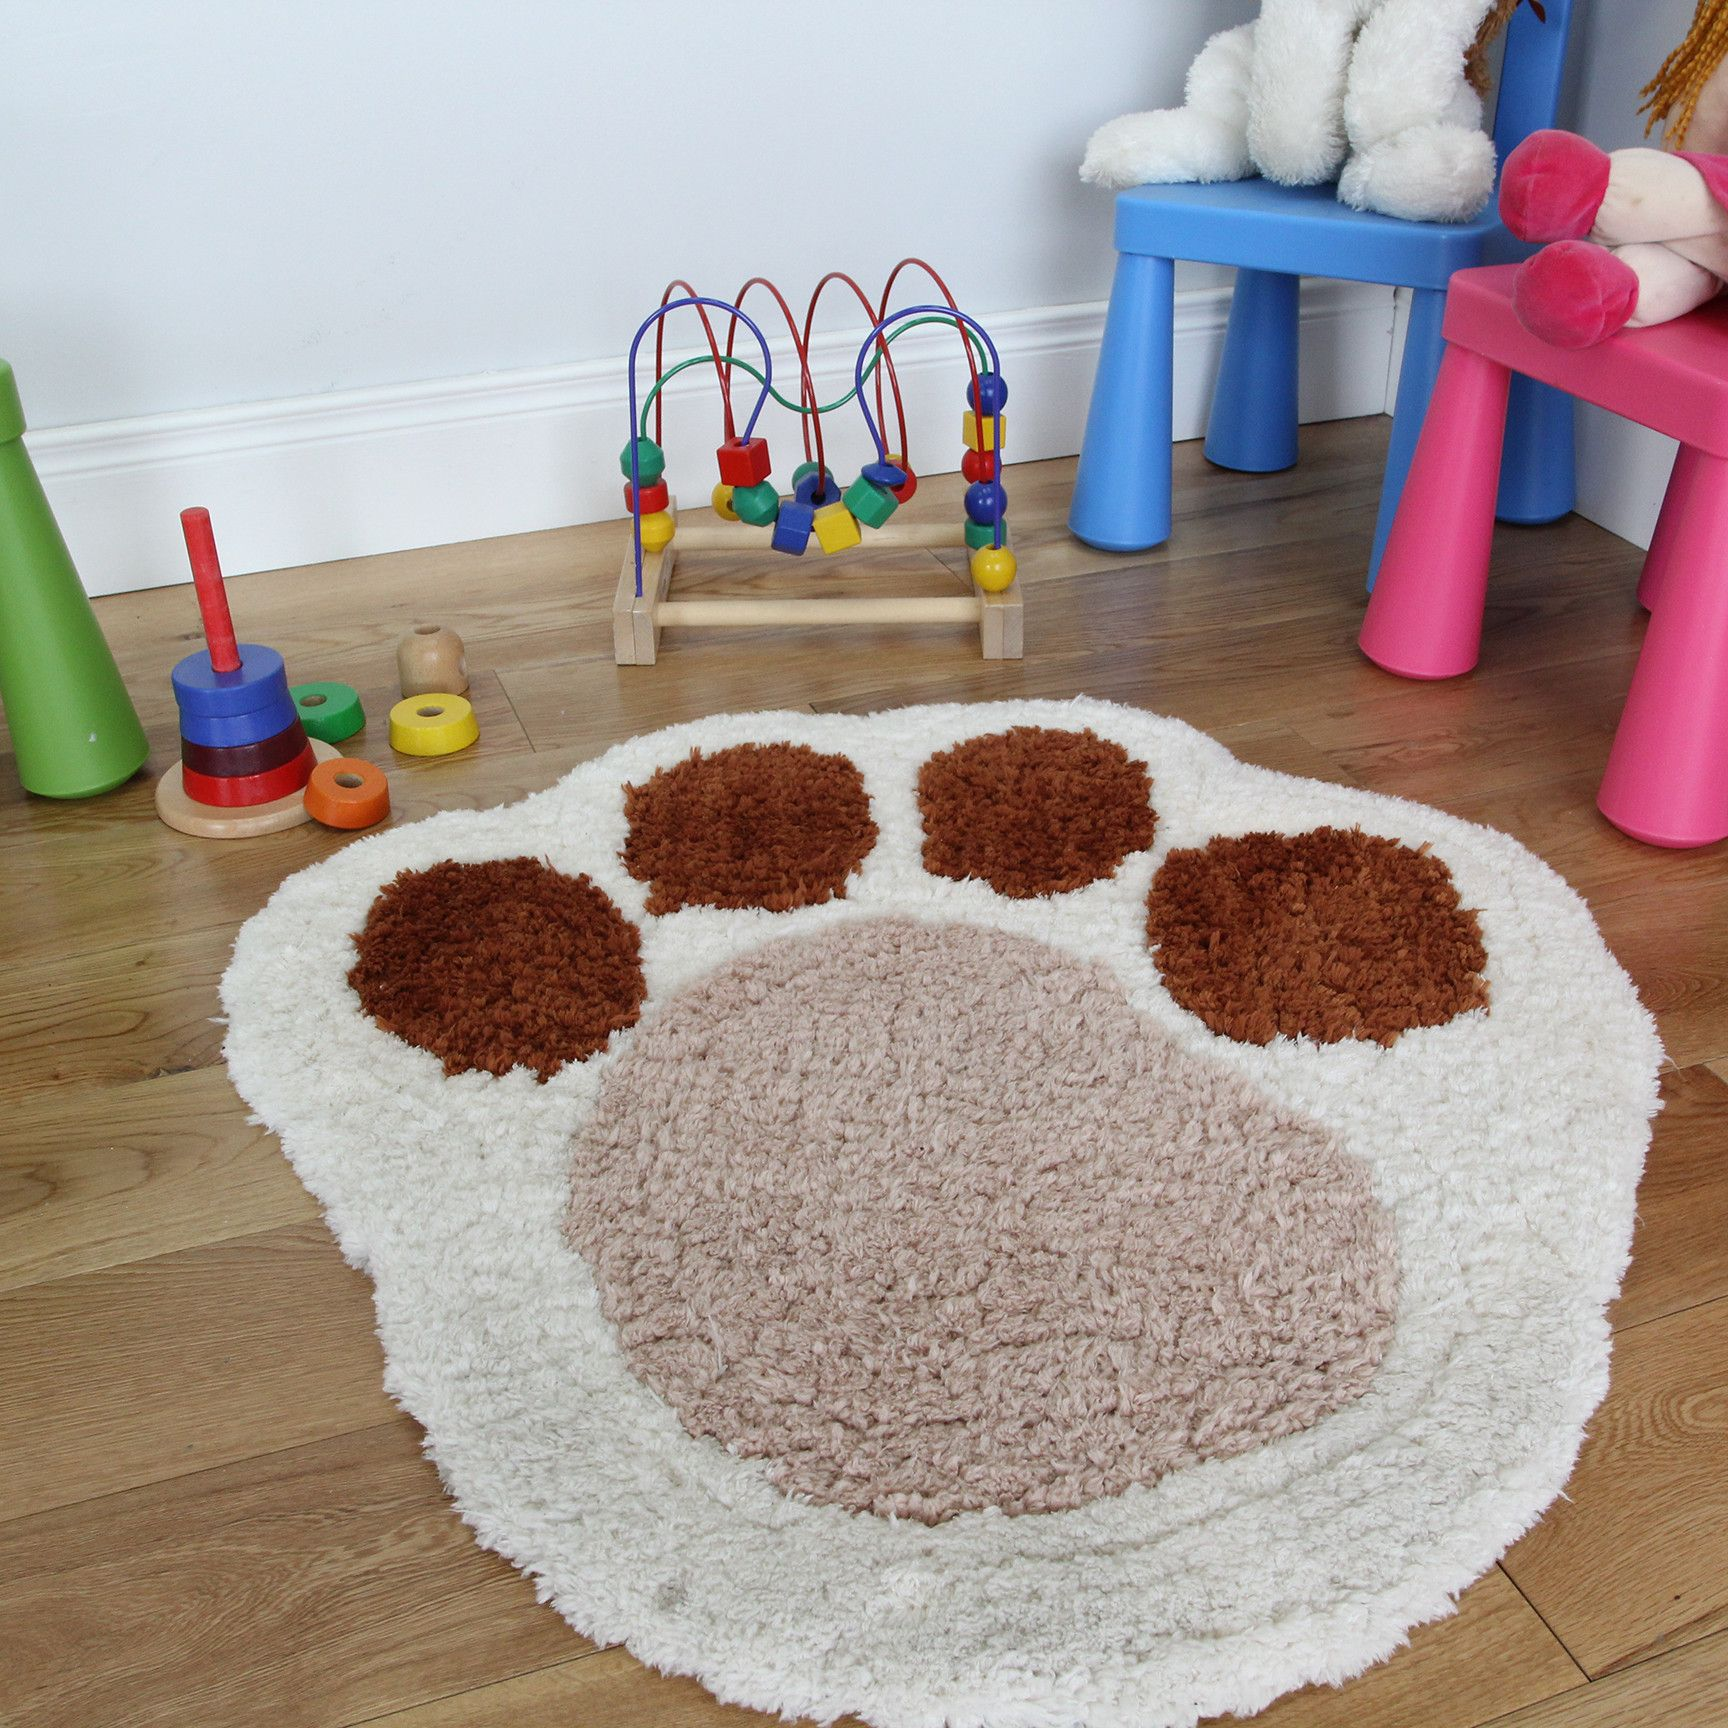 Runde Teppiche Soft Kinder Teppich Teppich Kids Rugs Rugs Und Home Decor